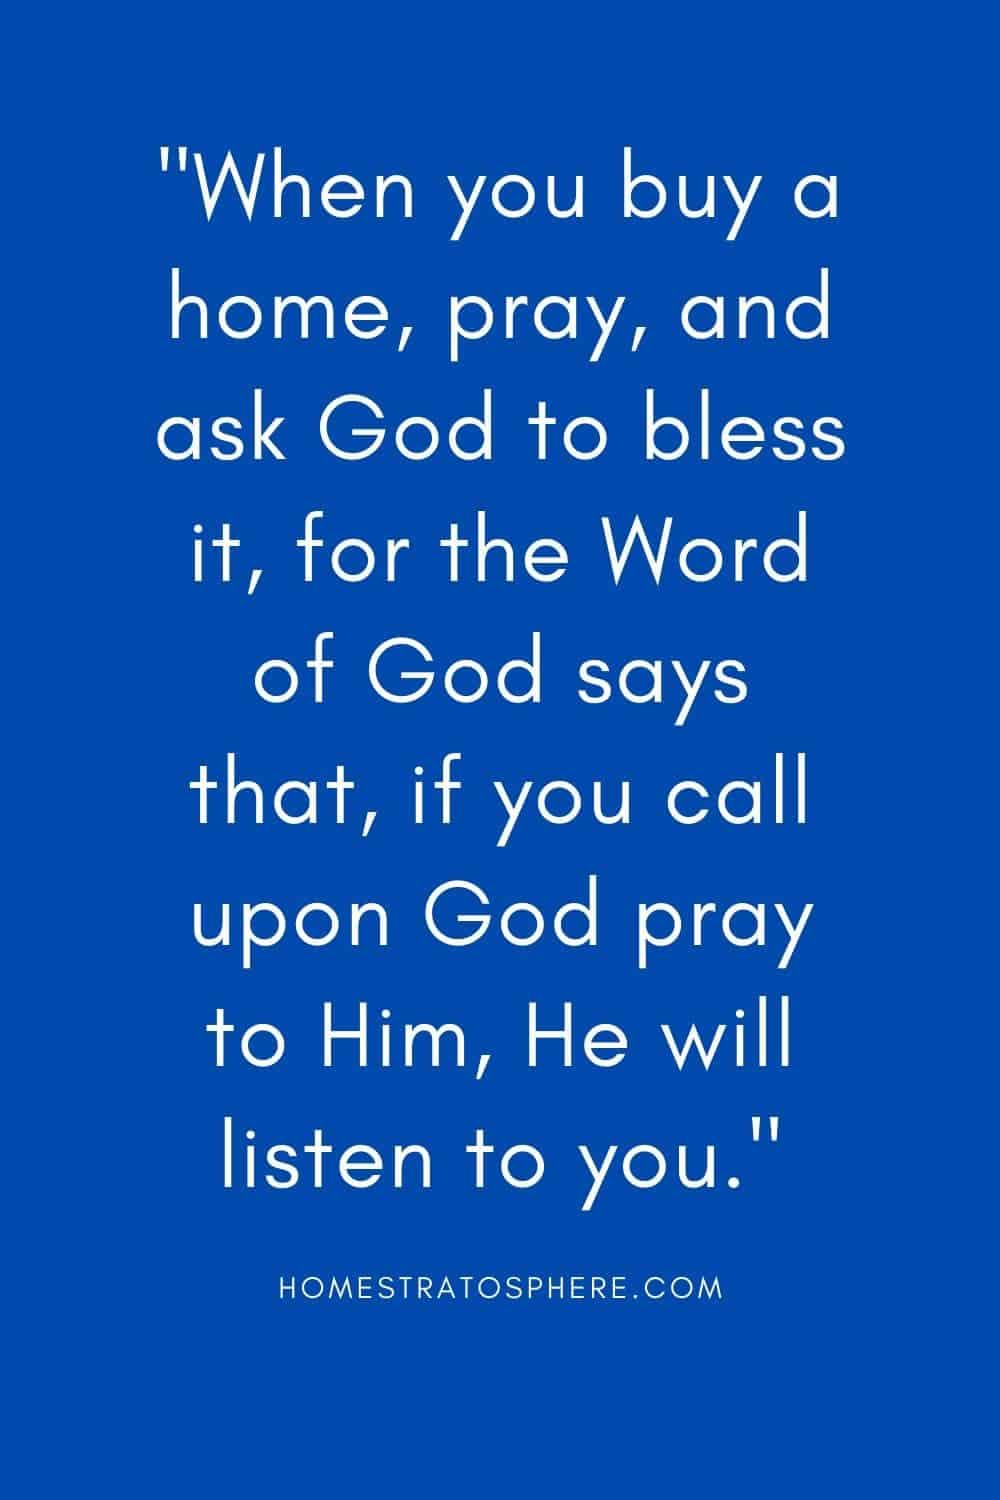 """When you buy a home, pray, and ask God to bless it, for the Word of God says that, if you call upon God pray to Him, He will listen to you."""